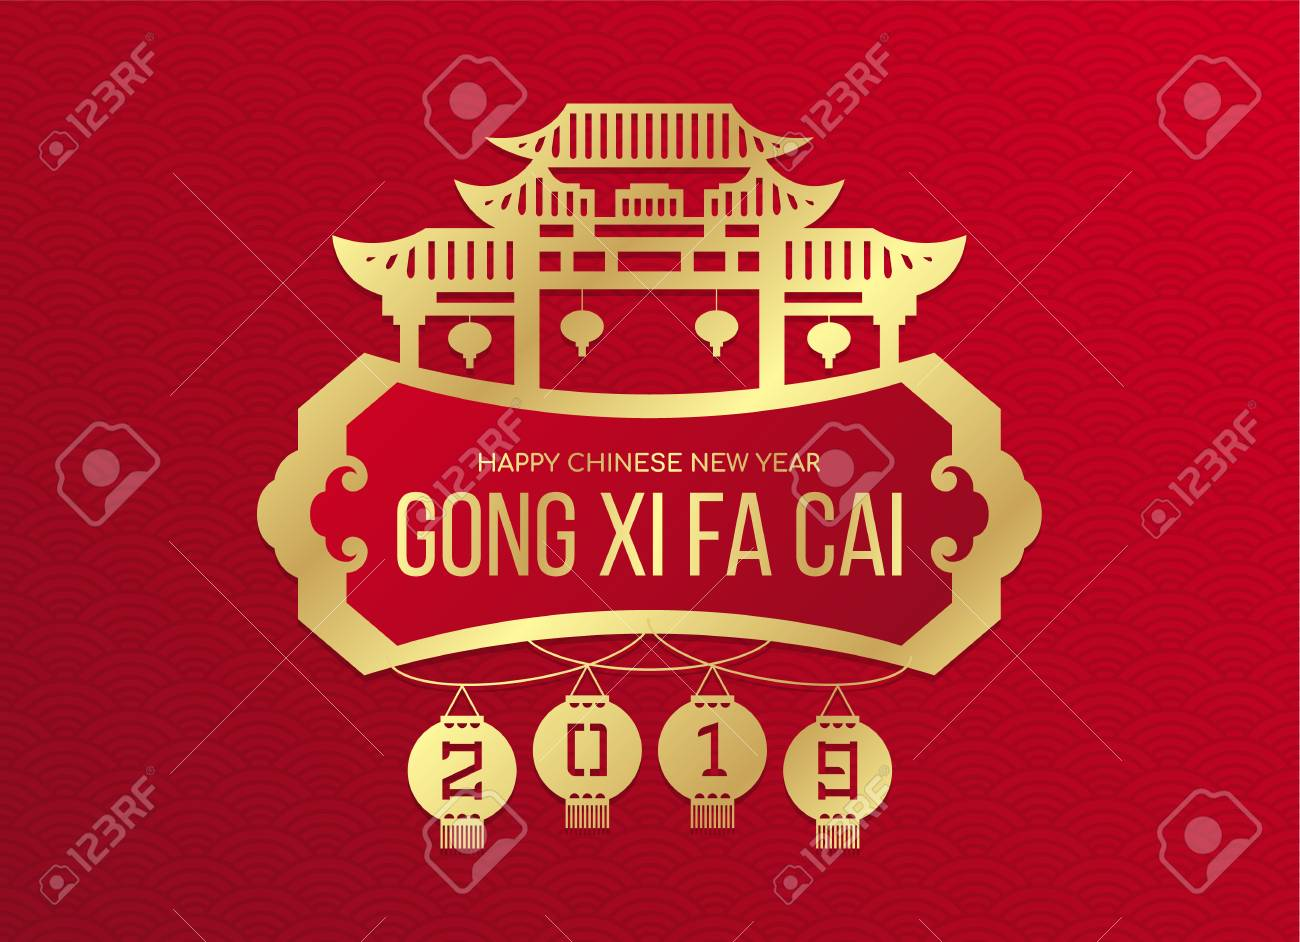 happy chinese new year gong xi fa cai banner with gold 2019 number of